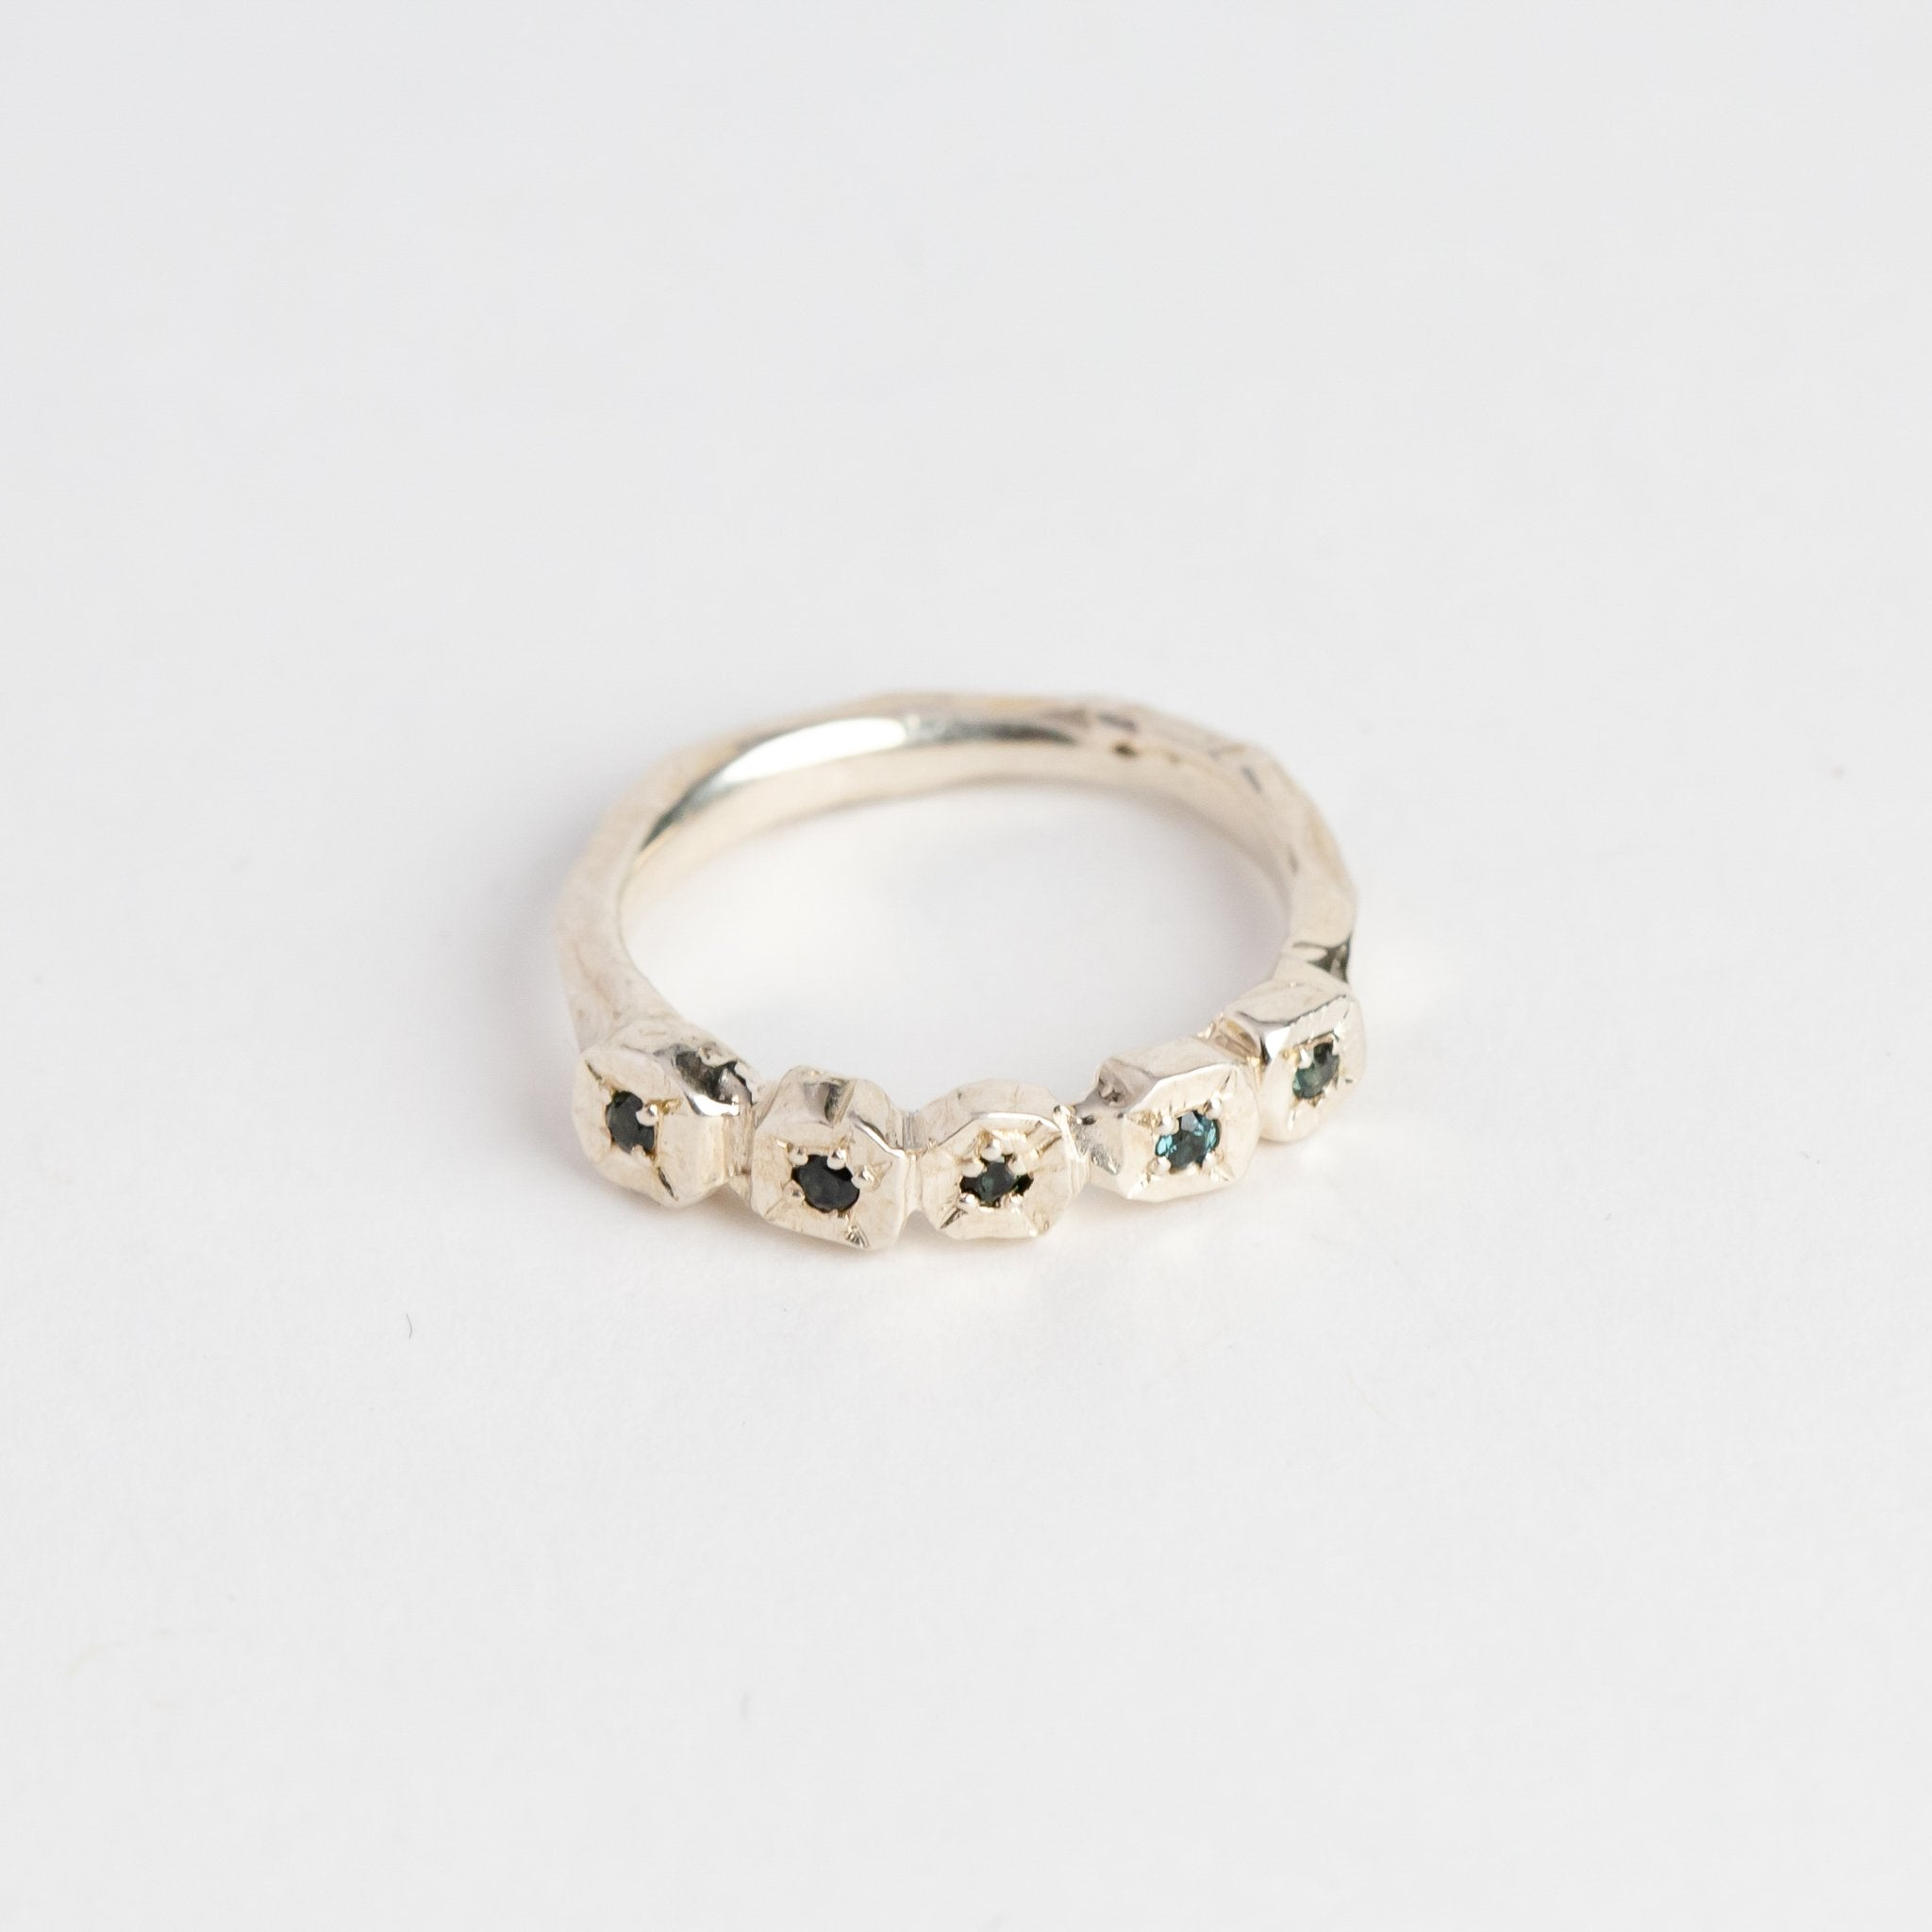 Handmade Silver Ring with Ethically Sourced Australian Sapphires, Hand Made Jewellery, Made in Melbourne